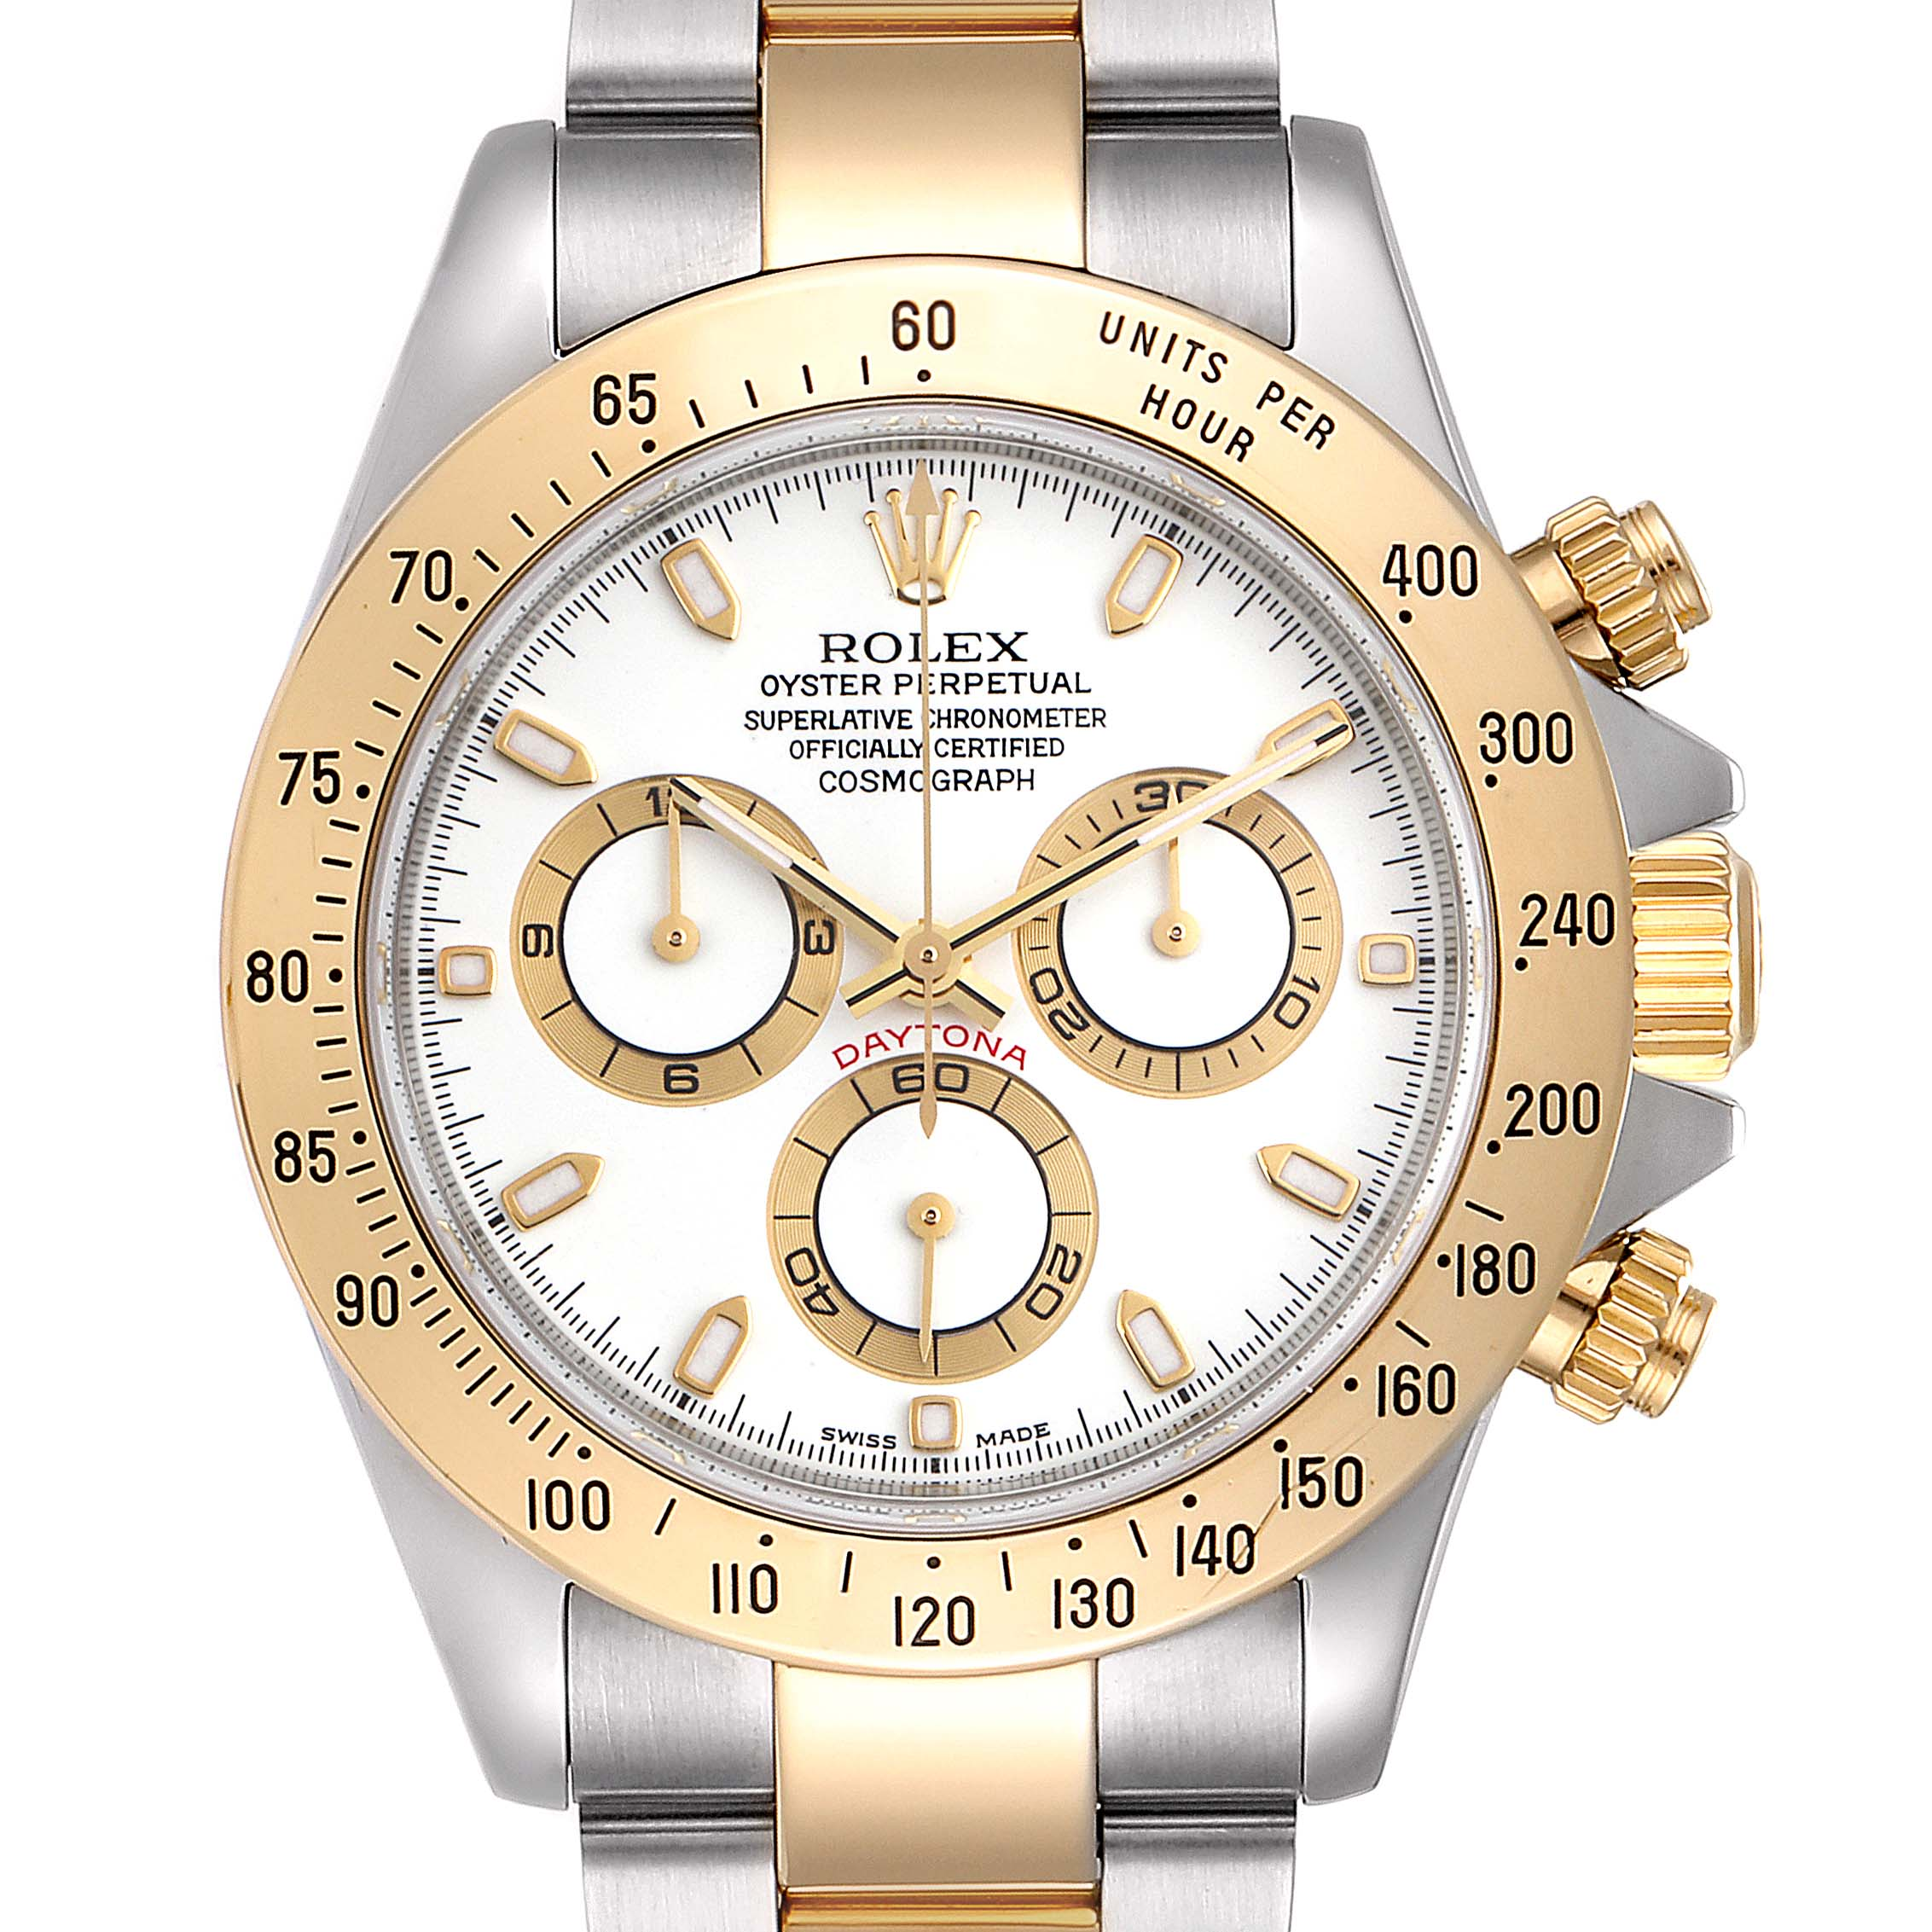 Rolex Daytona Steel Yellow Gold White Dial Chronograph Mens Watch 116523